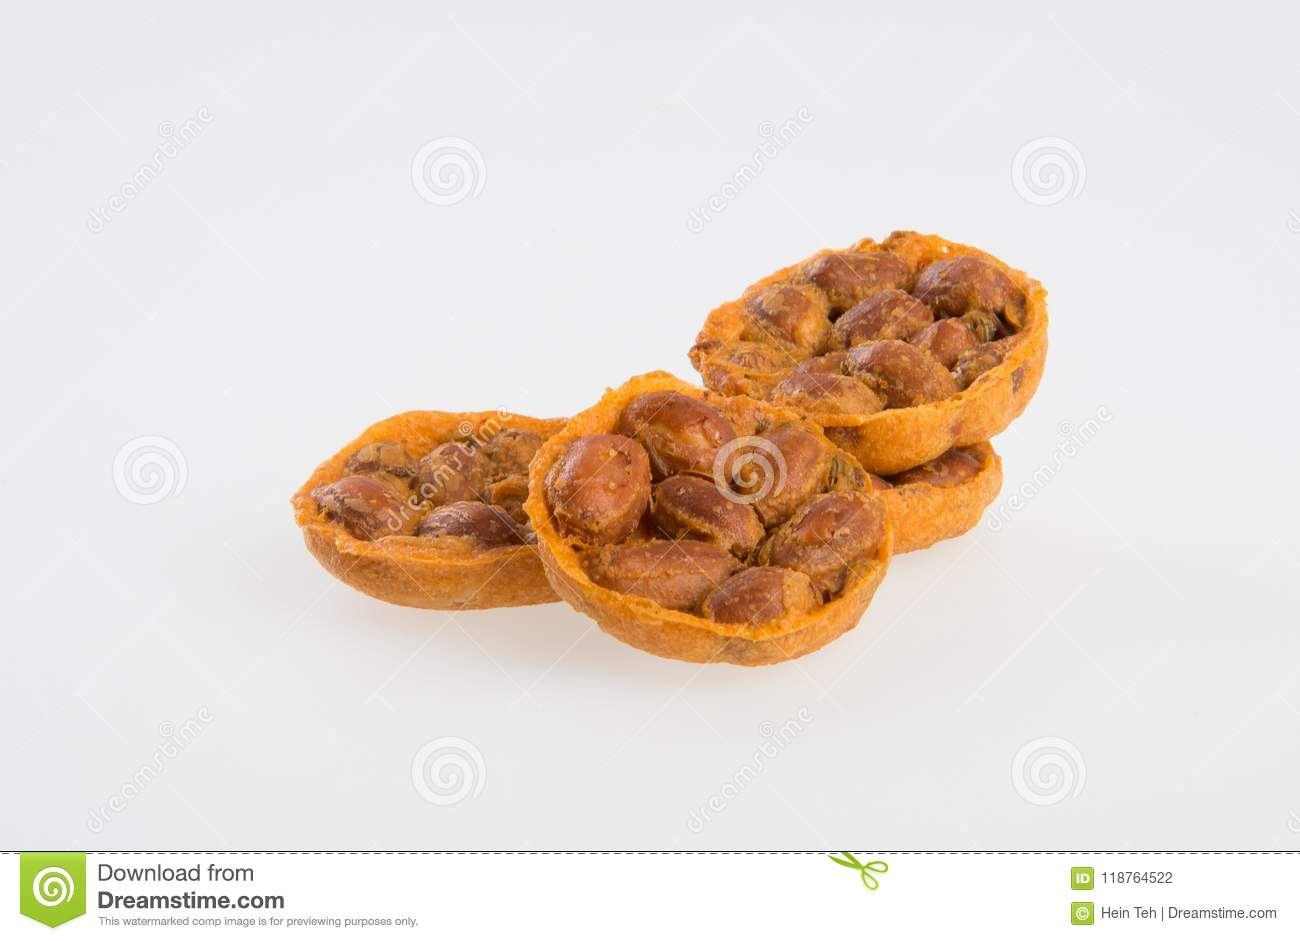 Cookies Or Peanut Cracker On Background  Stock Photo - Image